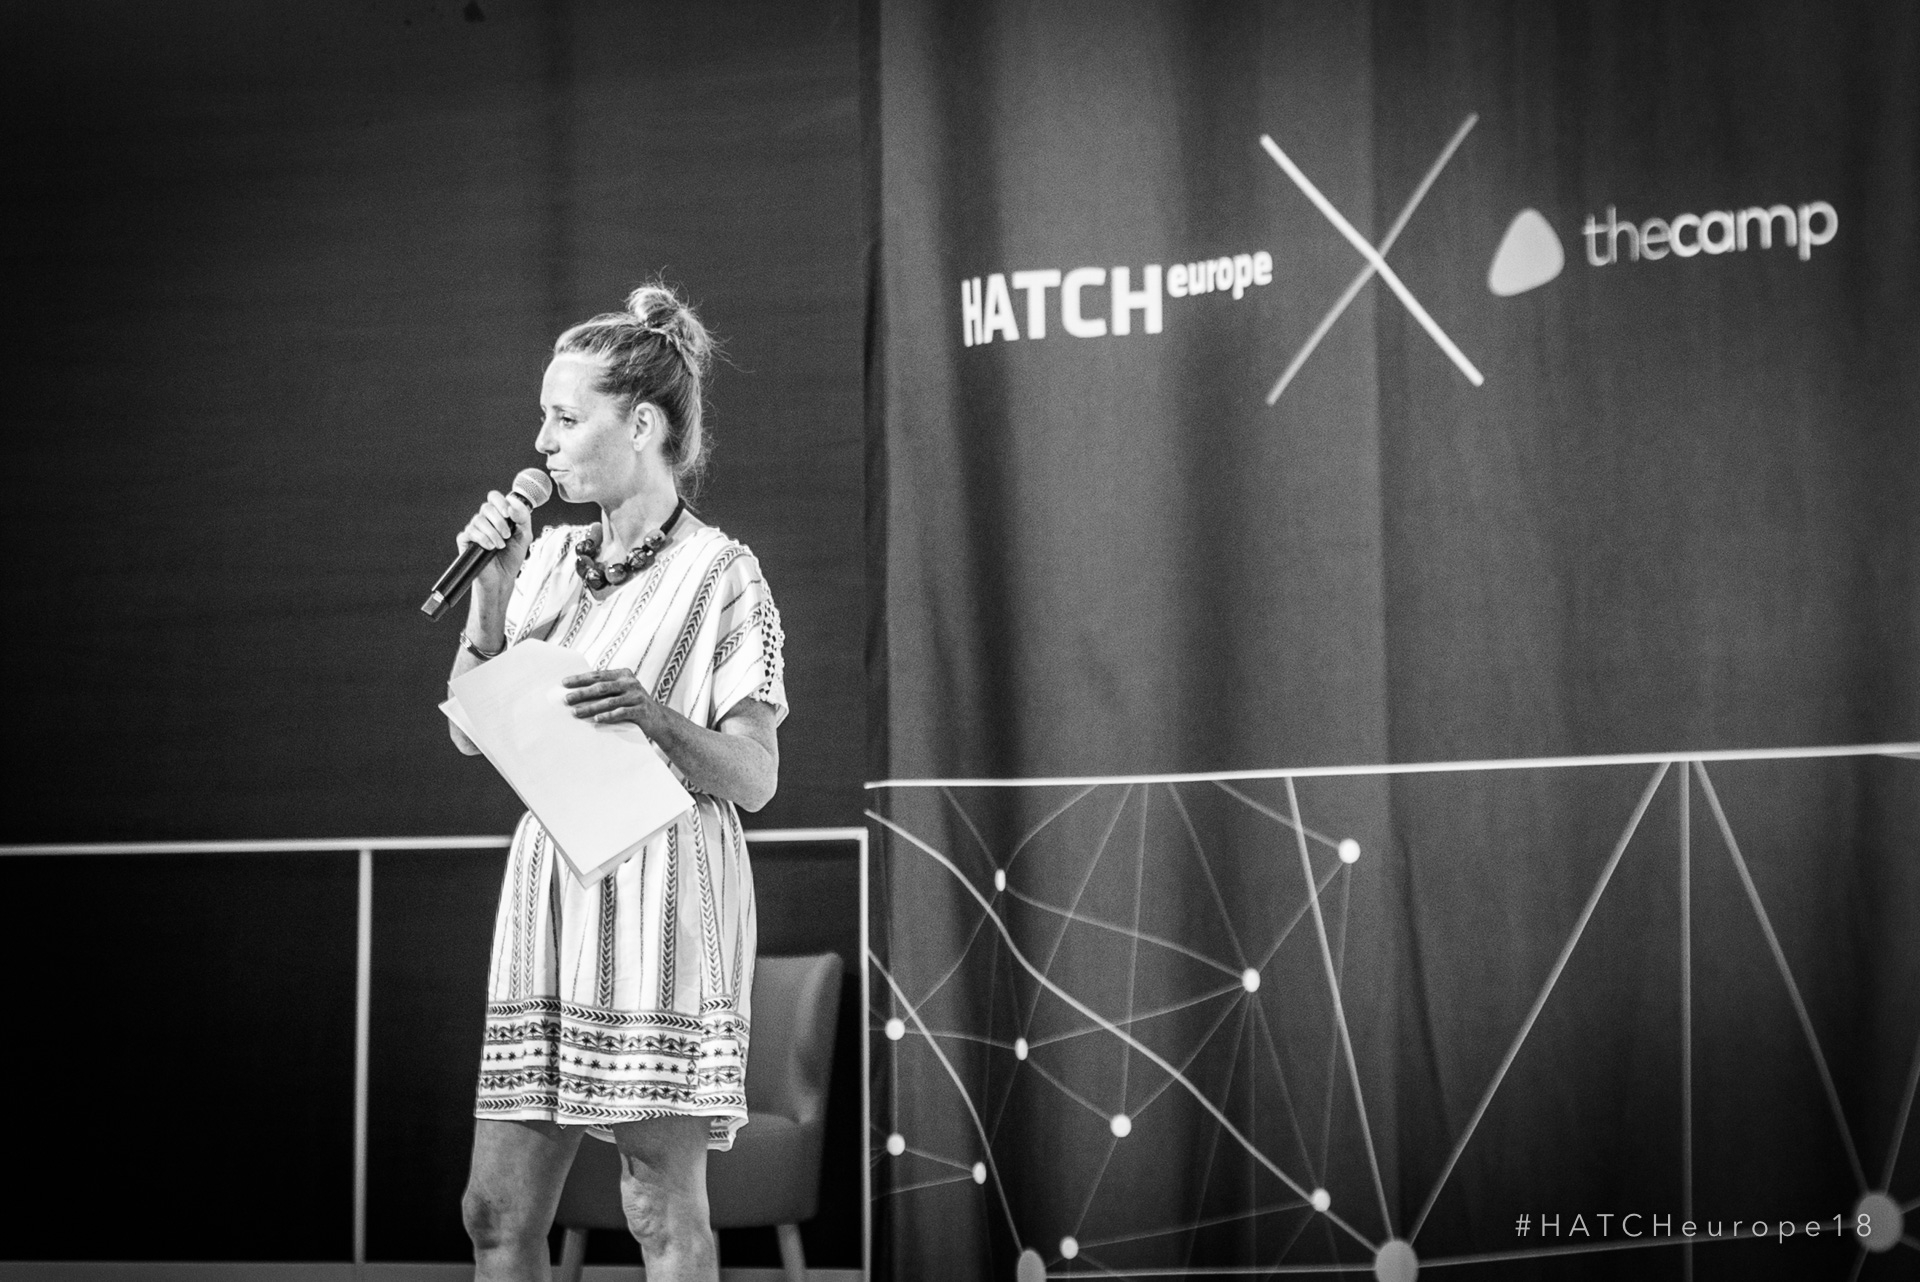 My first keynote at HATCH Europe X The Camp, april 2018.